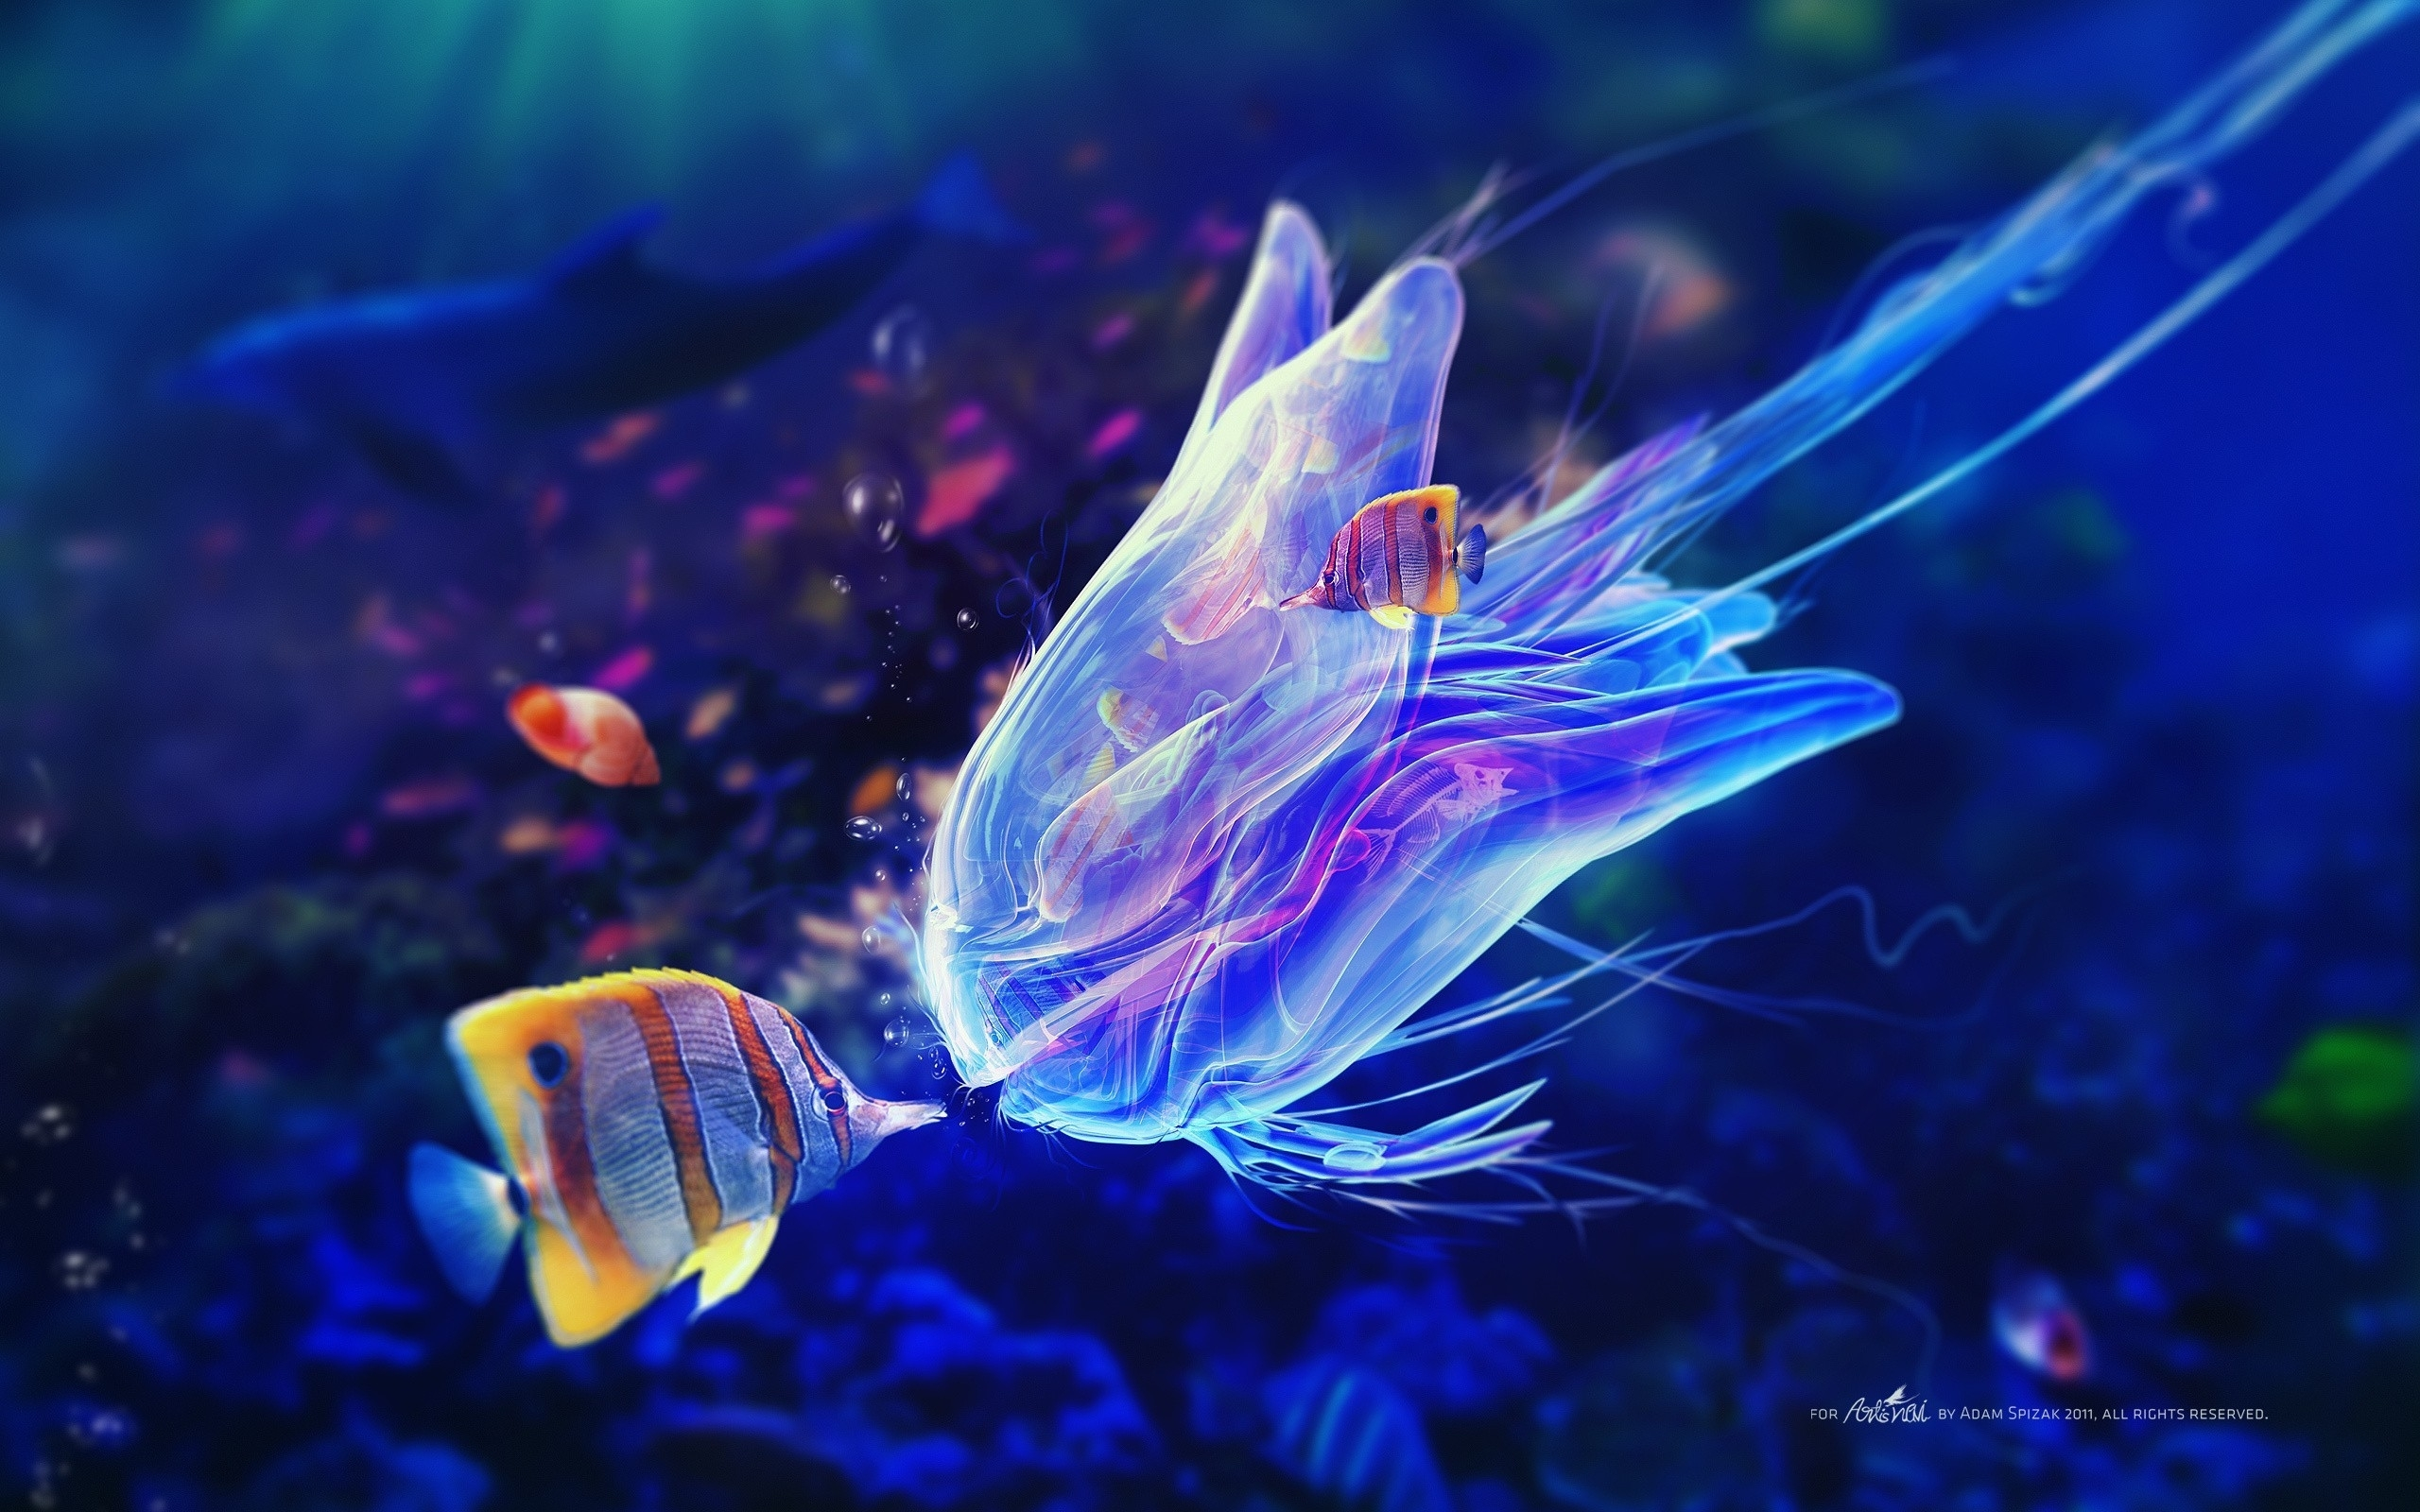 jelly fish kiss ocean life wallpapers - new hd wallpapers